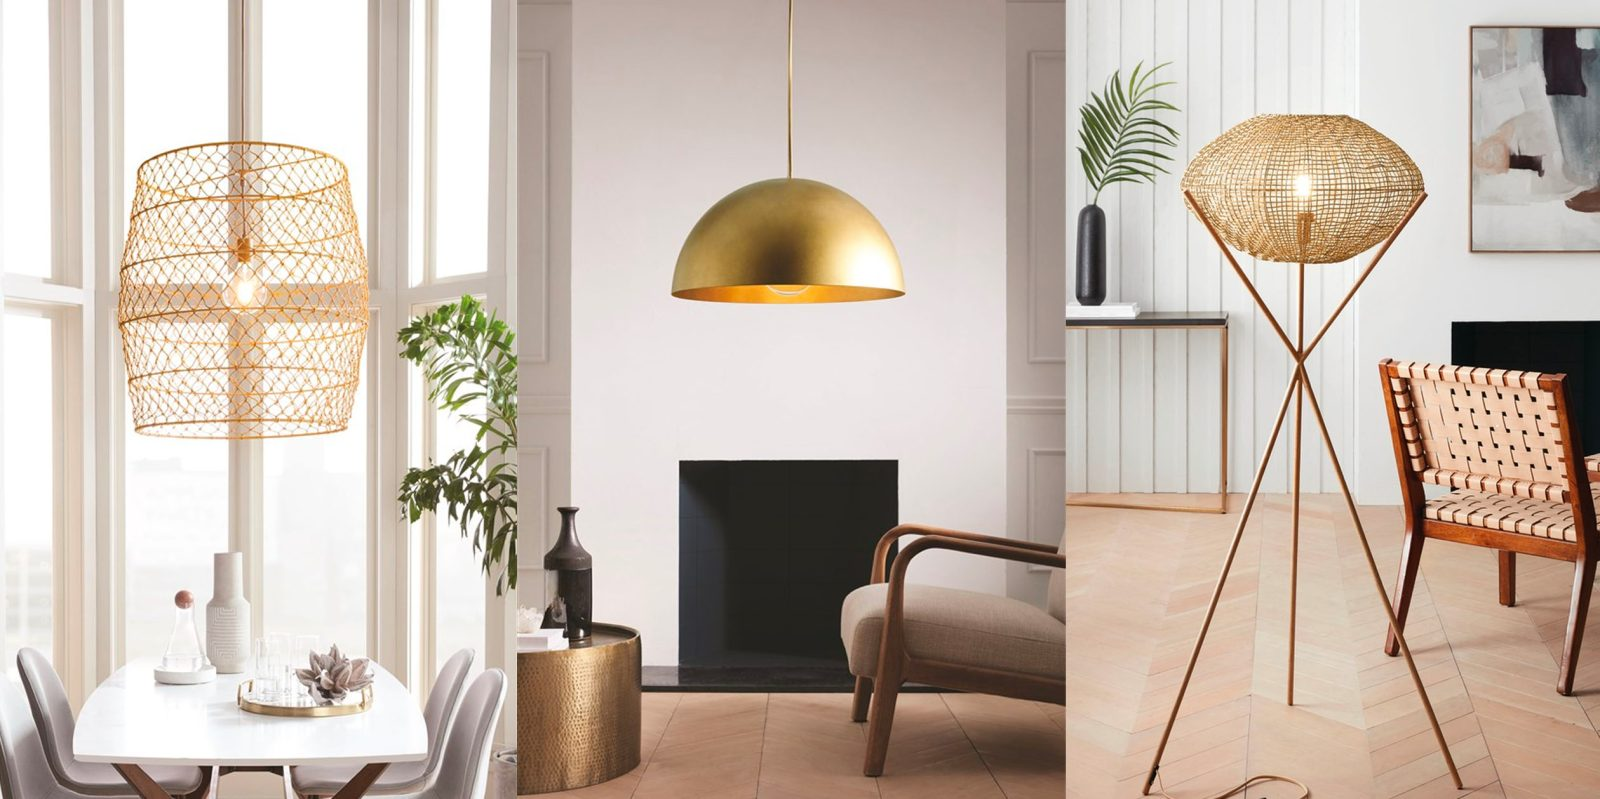 Target S New Modern Light Collection Collaborates With Hgtv Star Leanne Ford Deals From 30